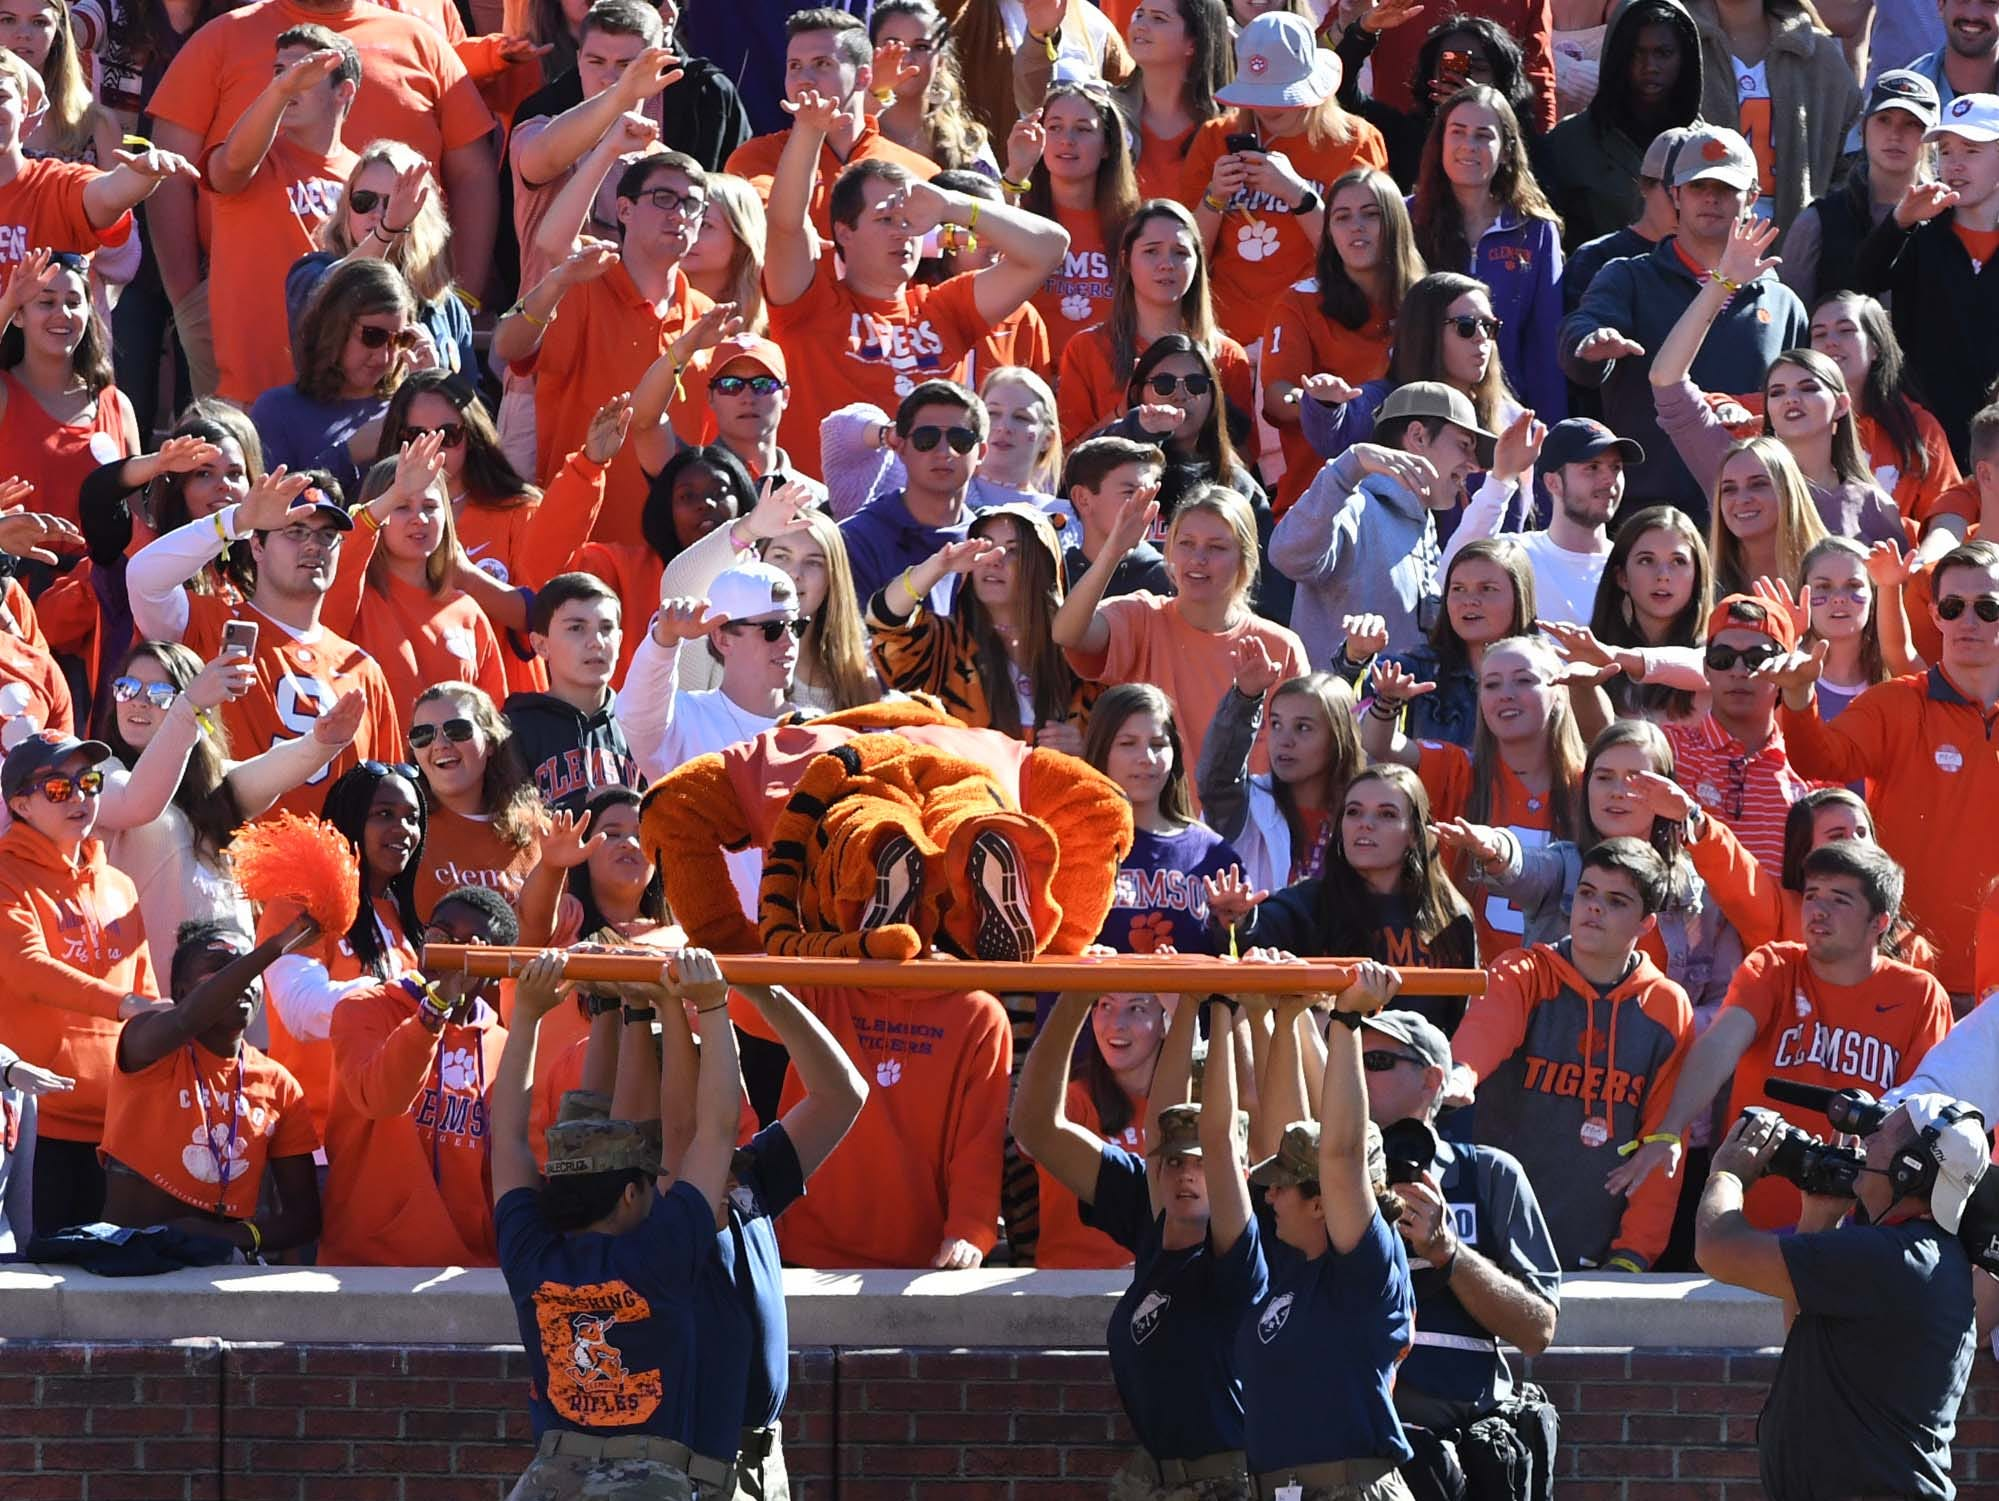 The Tiger performs 56 pushups near Clemson fans after Clemson wide receiver Trevion Thompson (1) scored a touchdown to make it 56-3 during the third quarter in Memorial Stadium on Saturday, November 3, 2018.